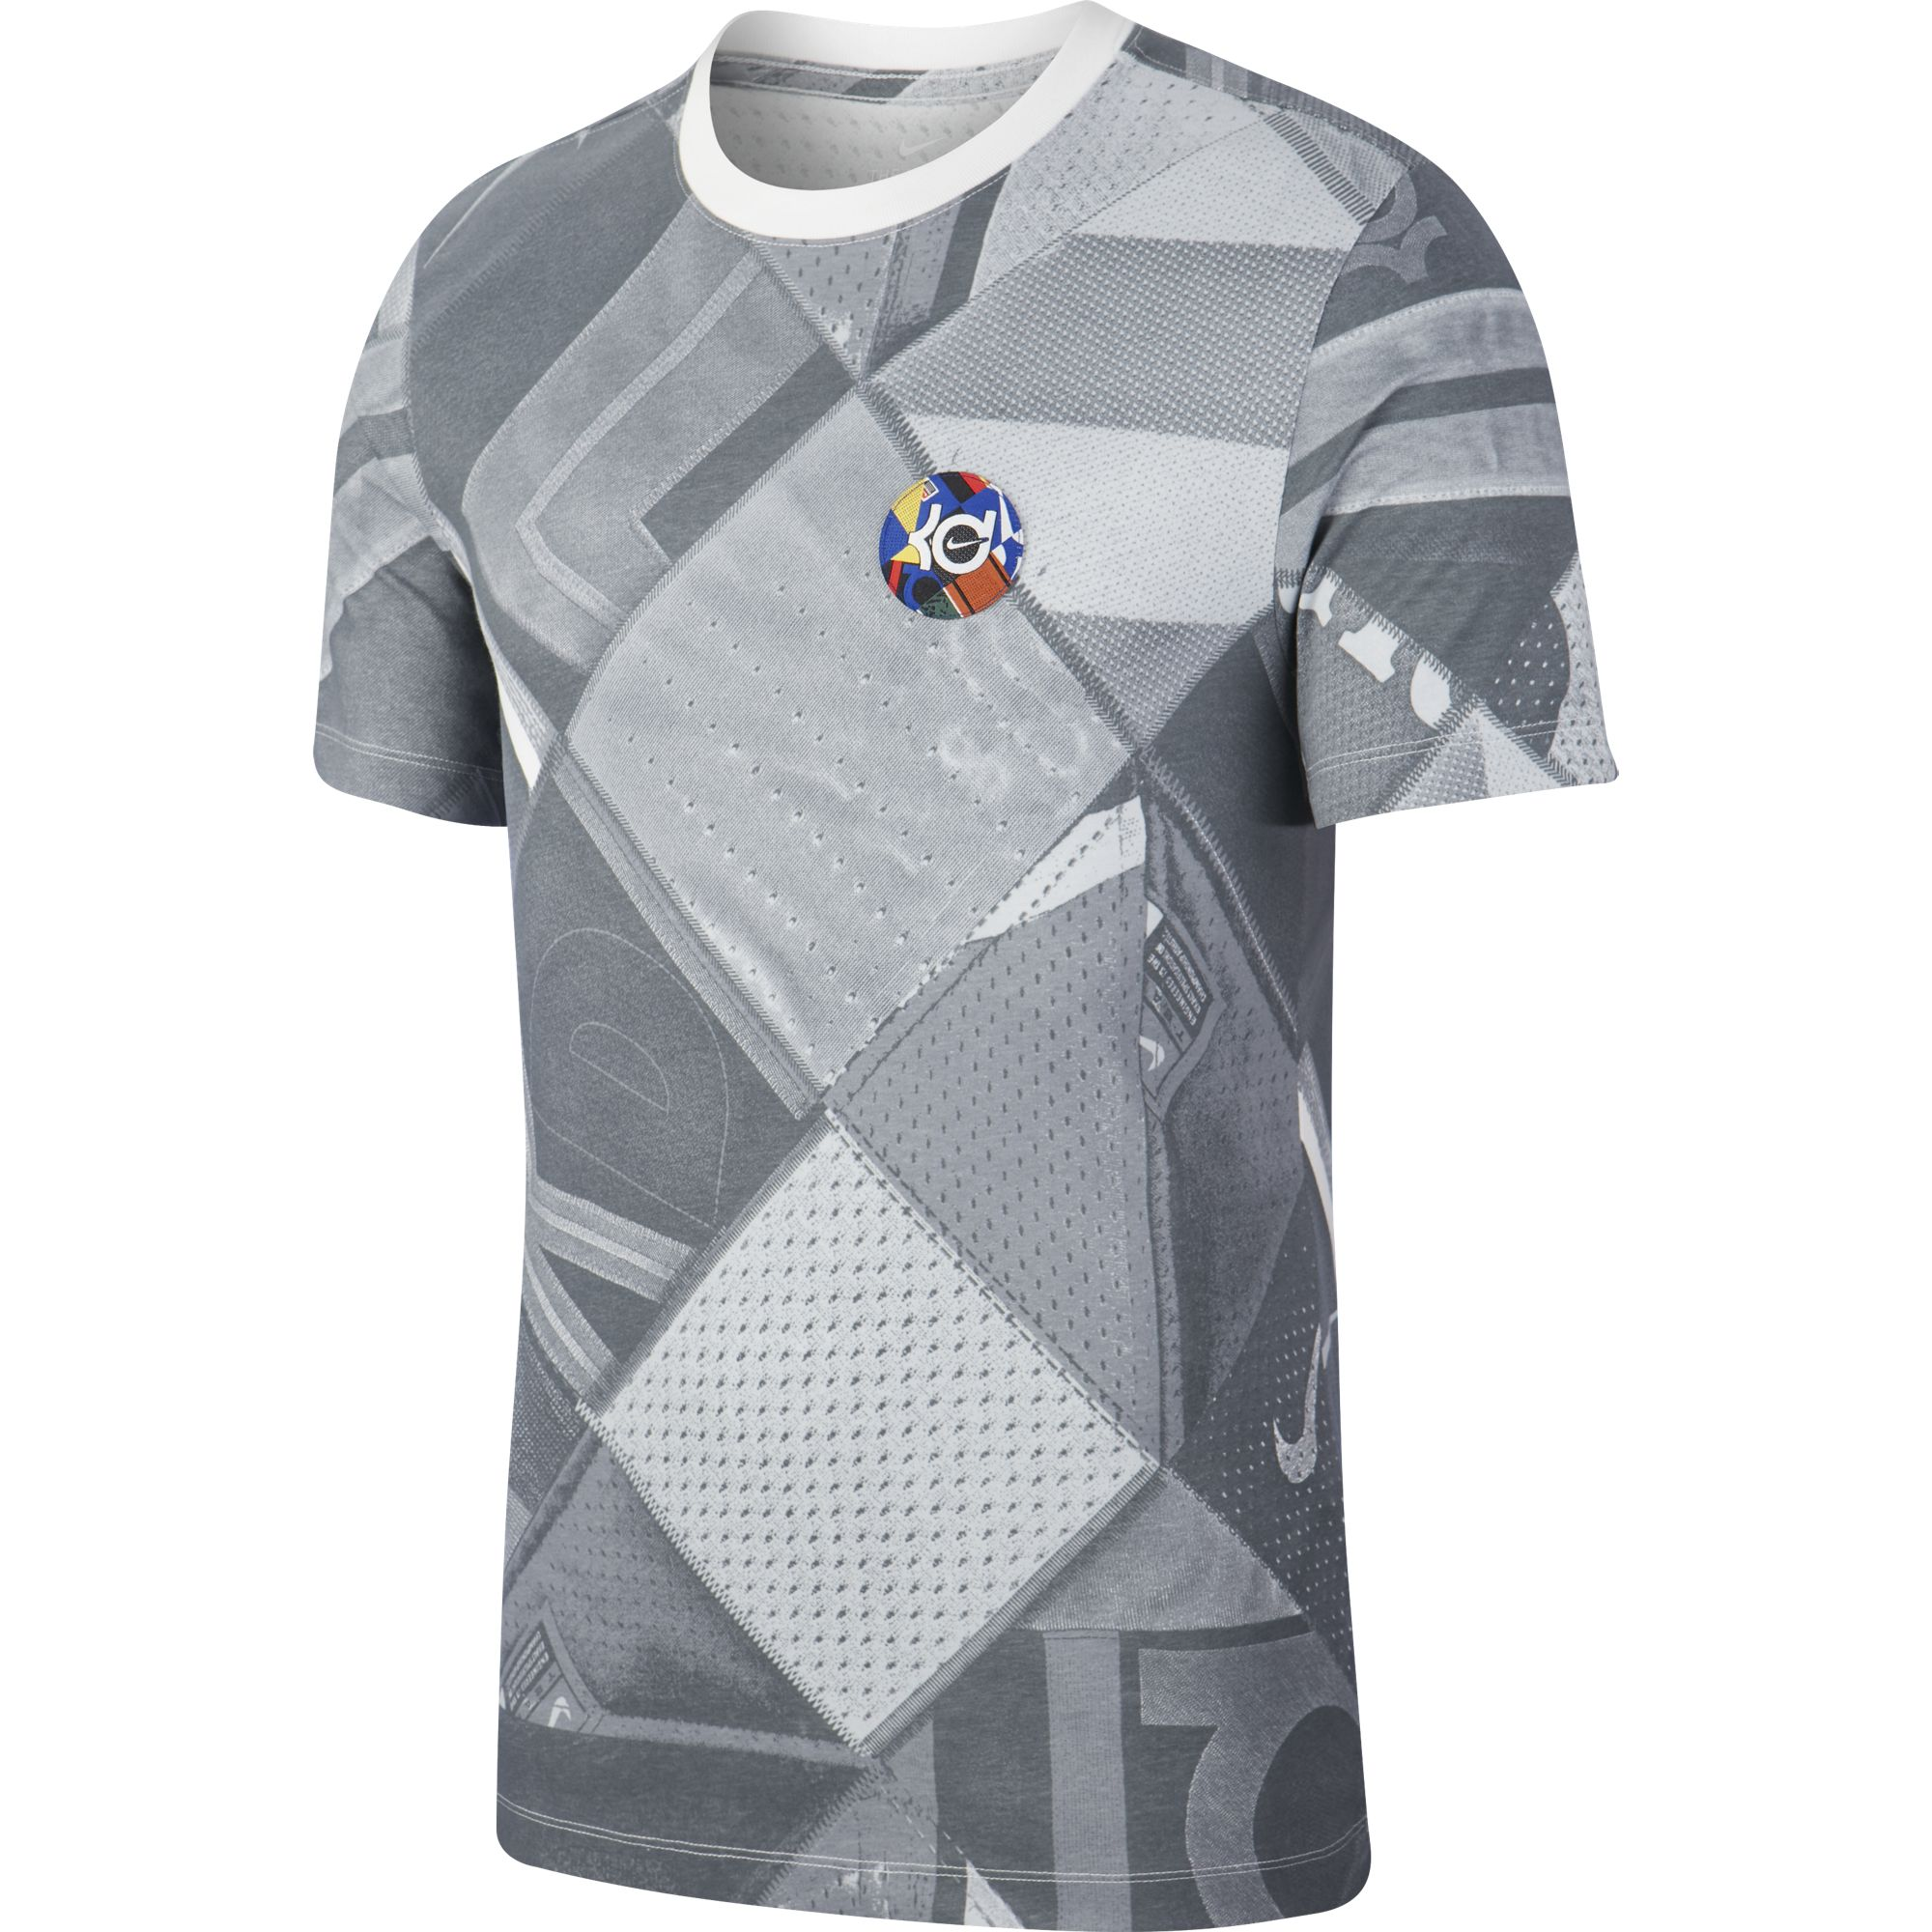 T SHIRT NIKE DRY KD ART GREY